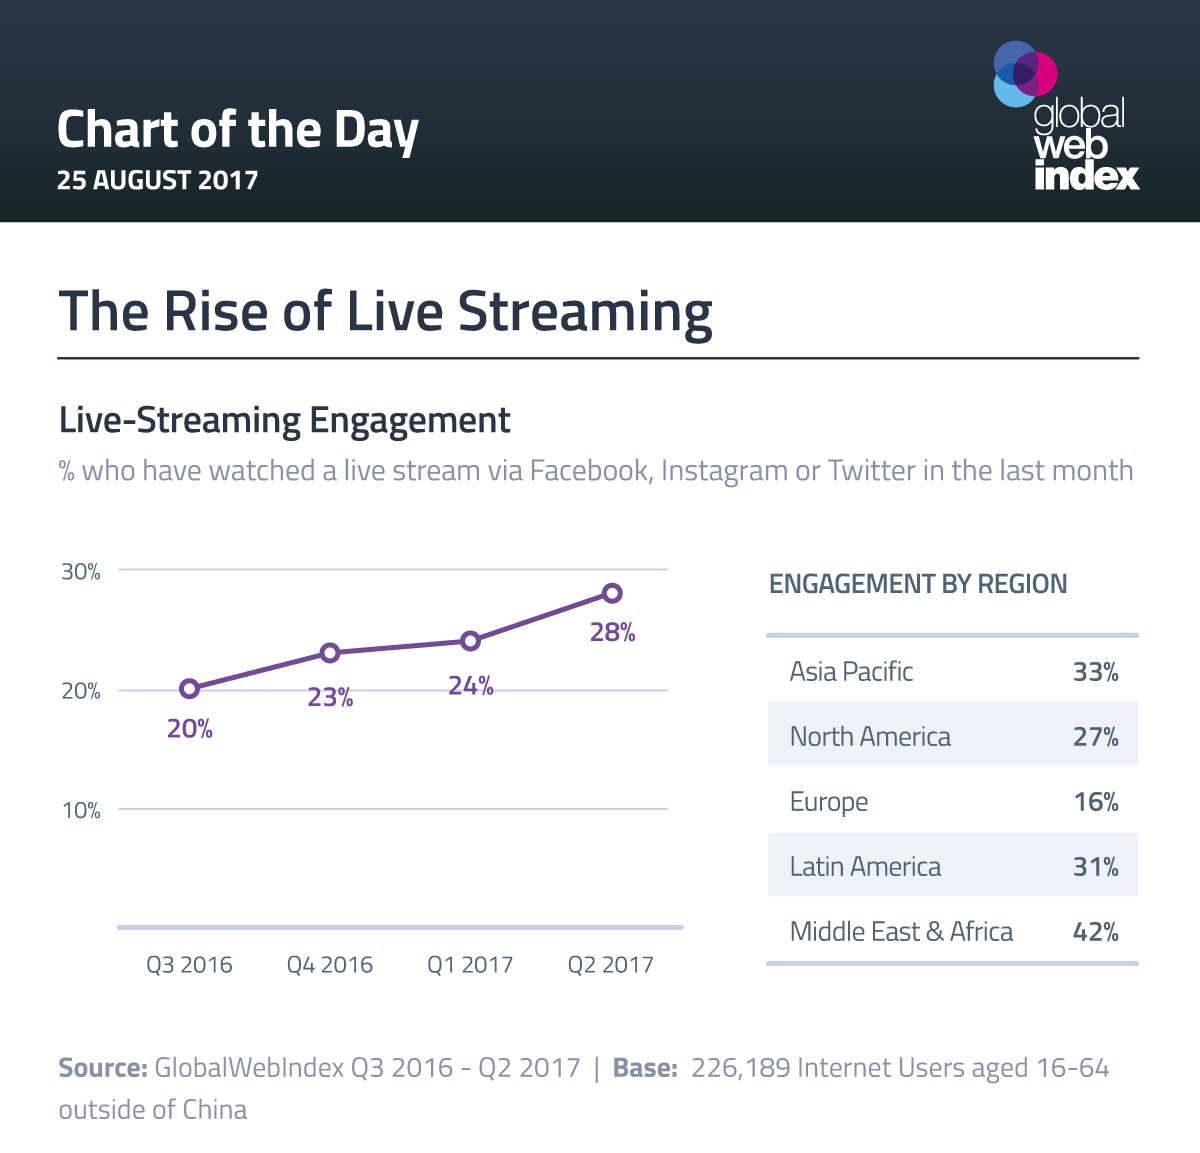 The Rise of Live Streaming